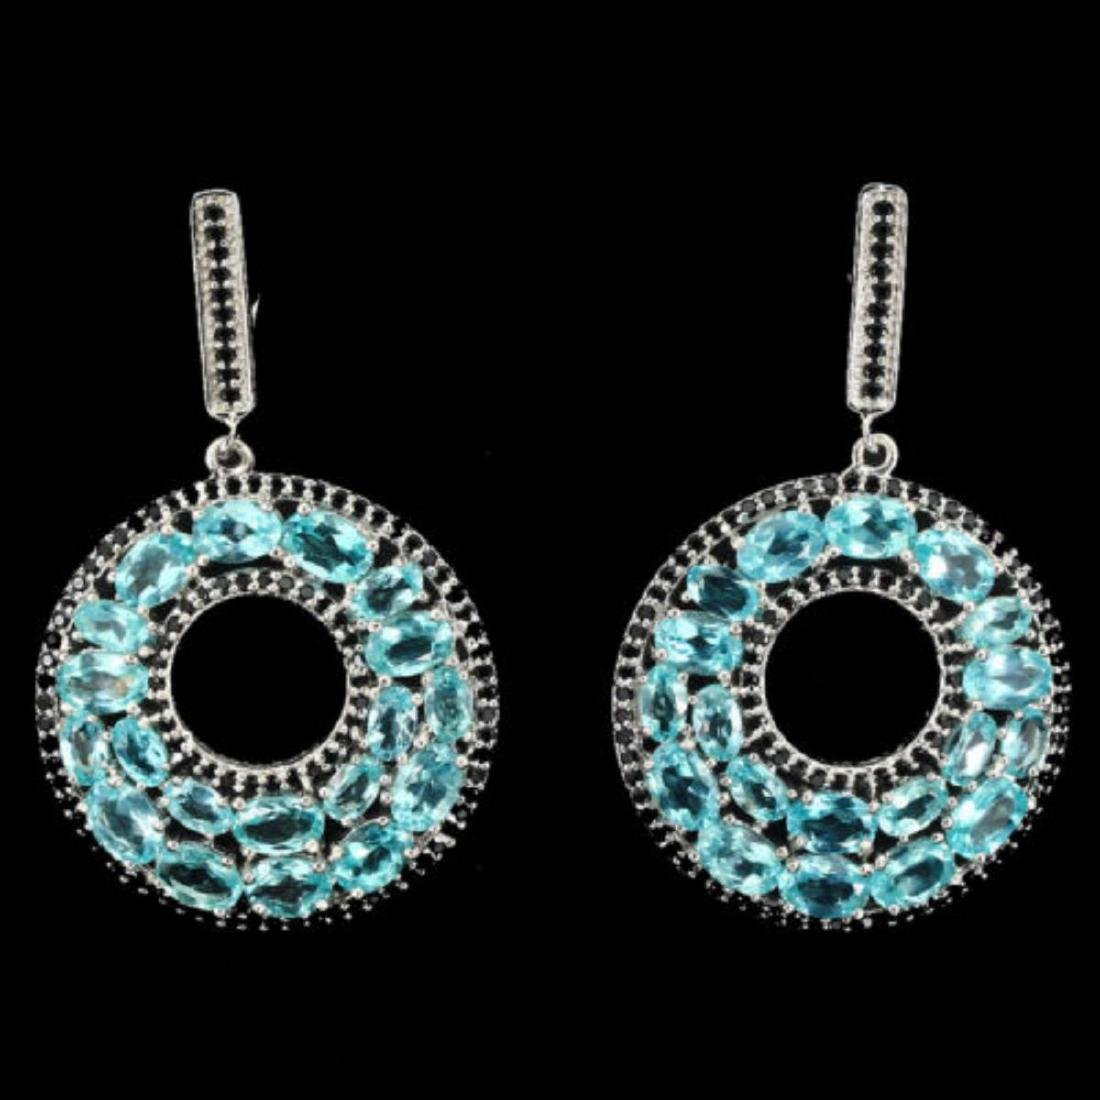 Natural Neon Blue Apatite Black Spinel Earrings